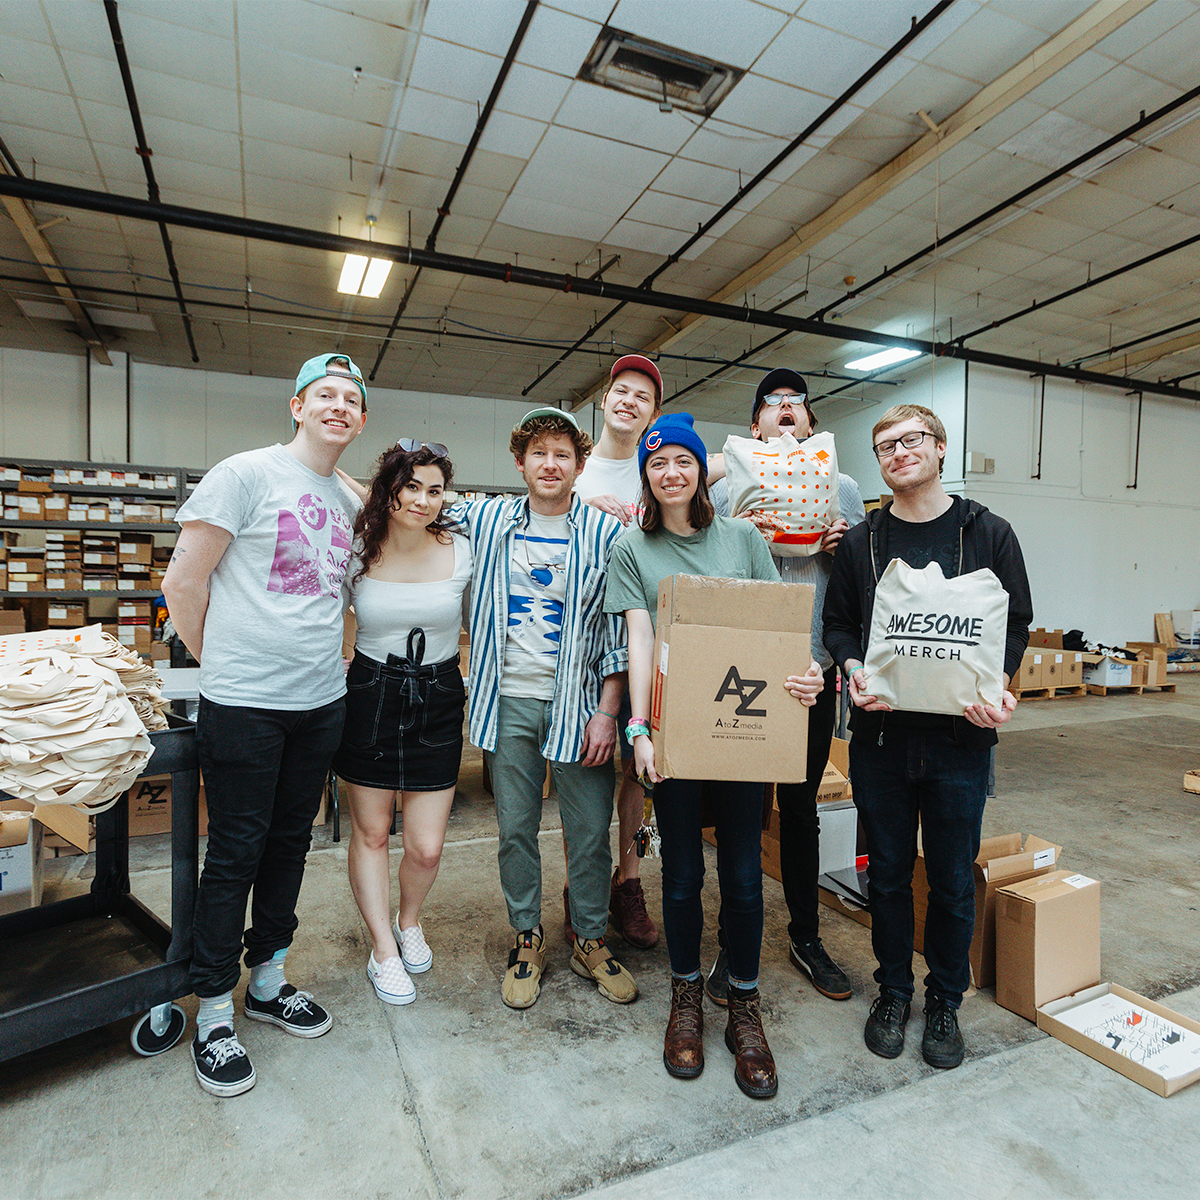 Ratboy, topshelf records, awesome merchandise, awesome distro